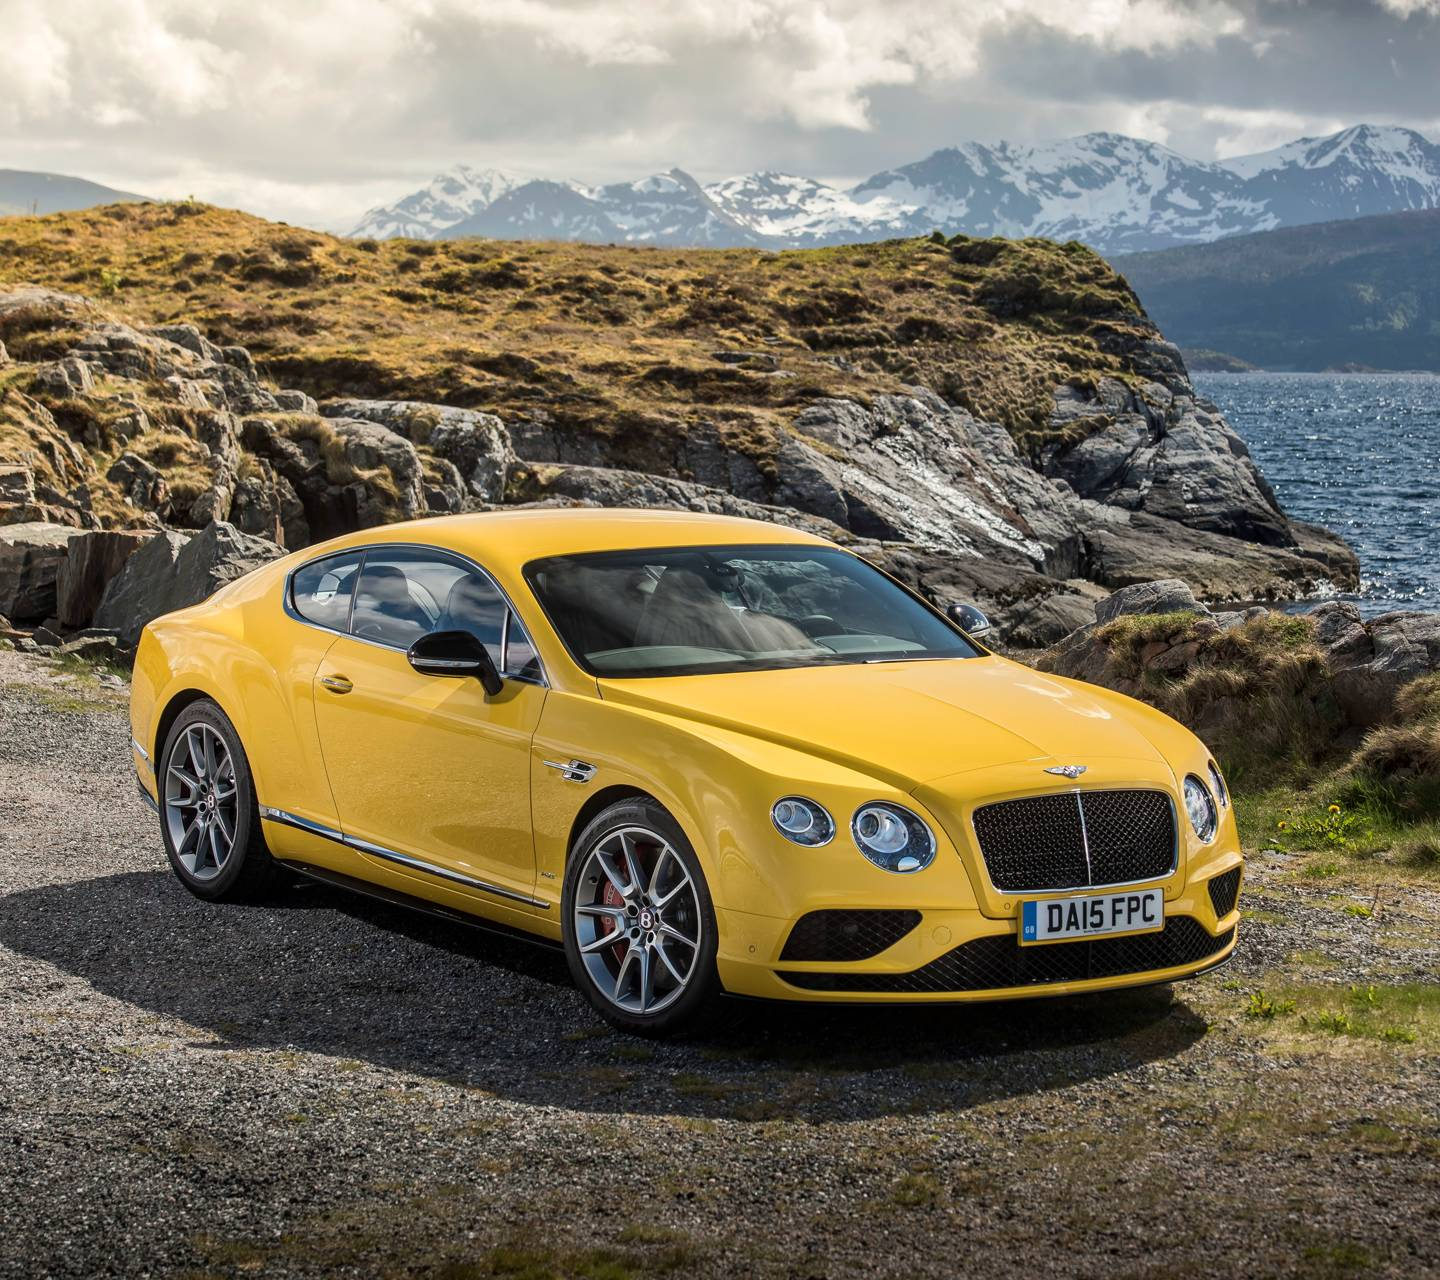 Continental GT S